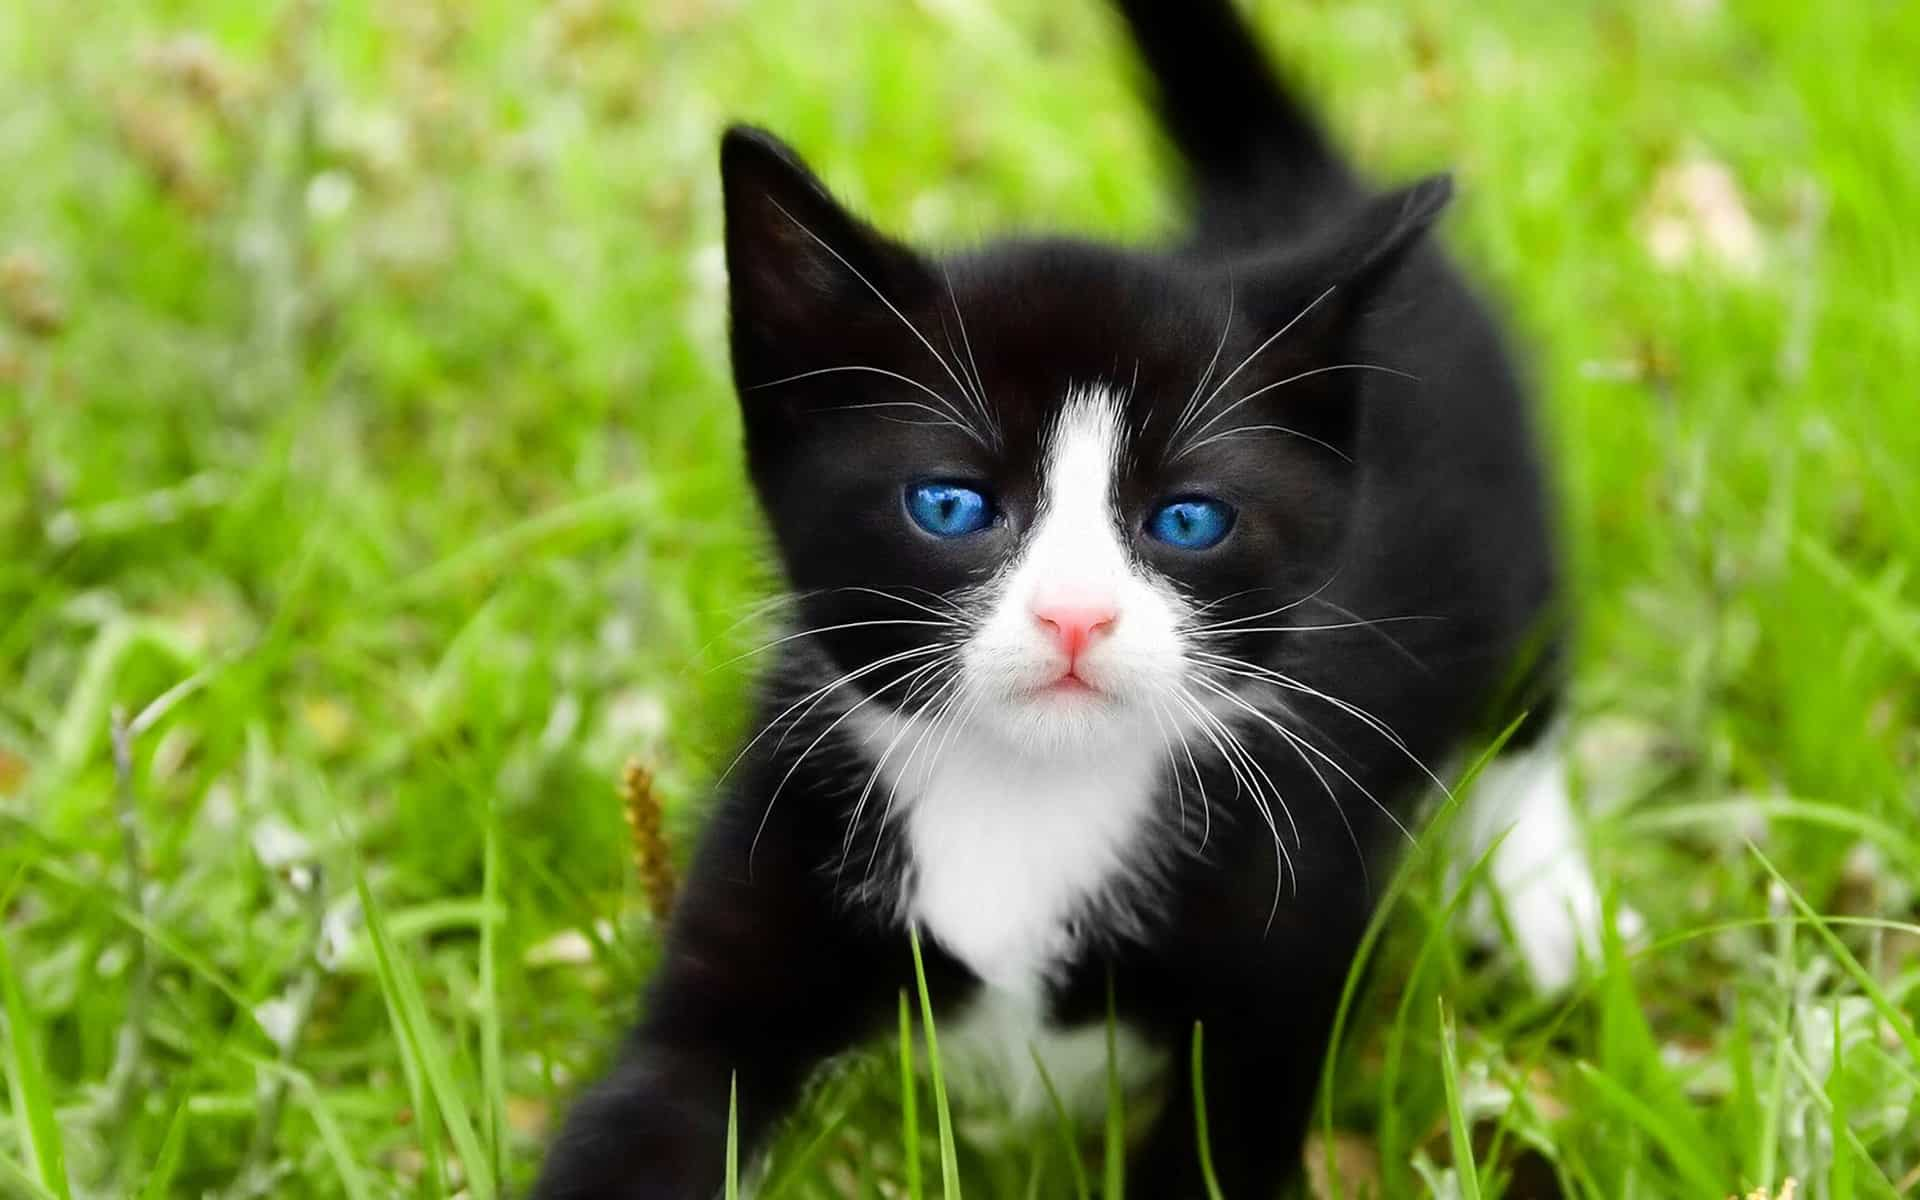 United States shorthair cat breeds, ojos azules